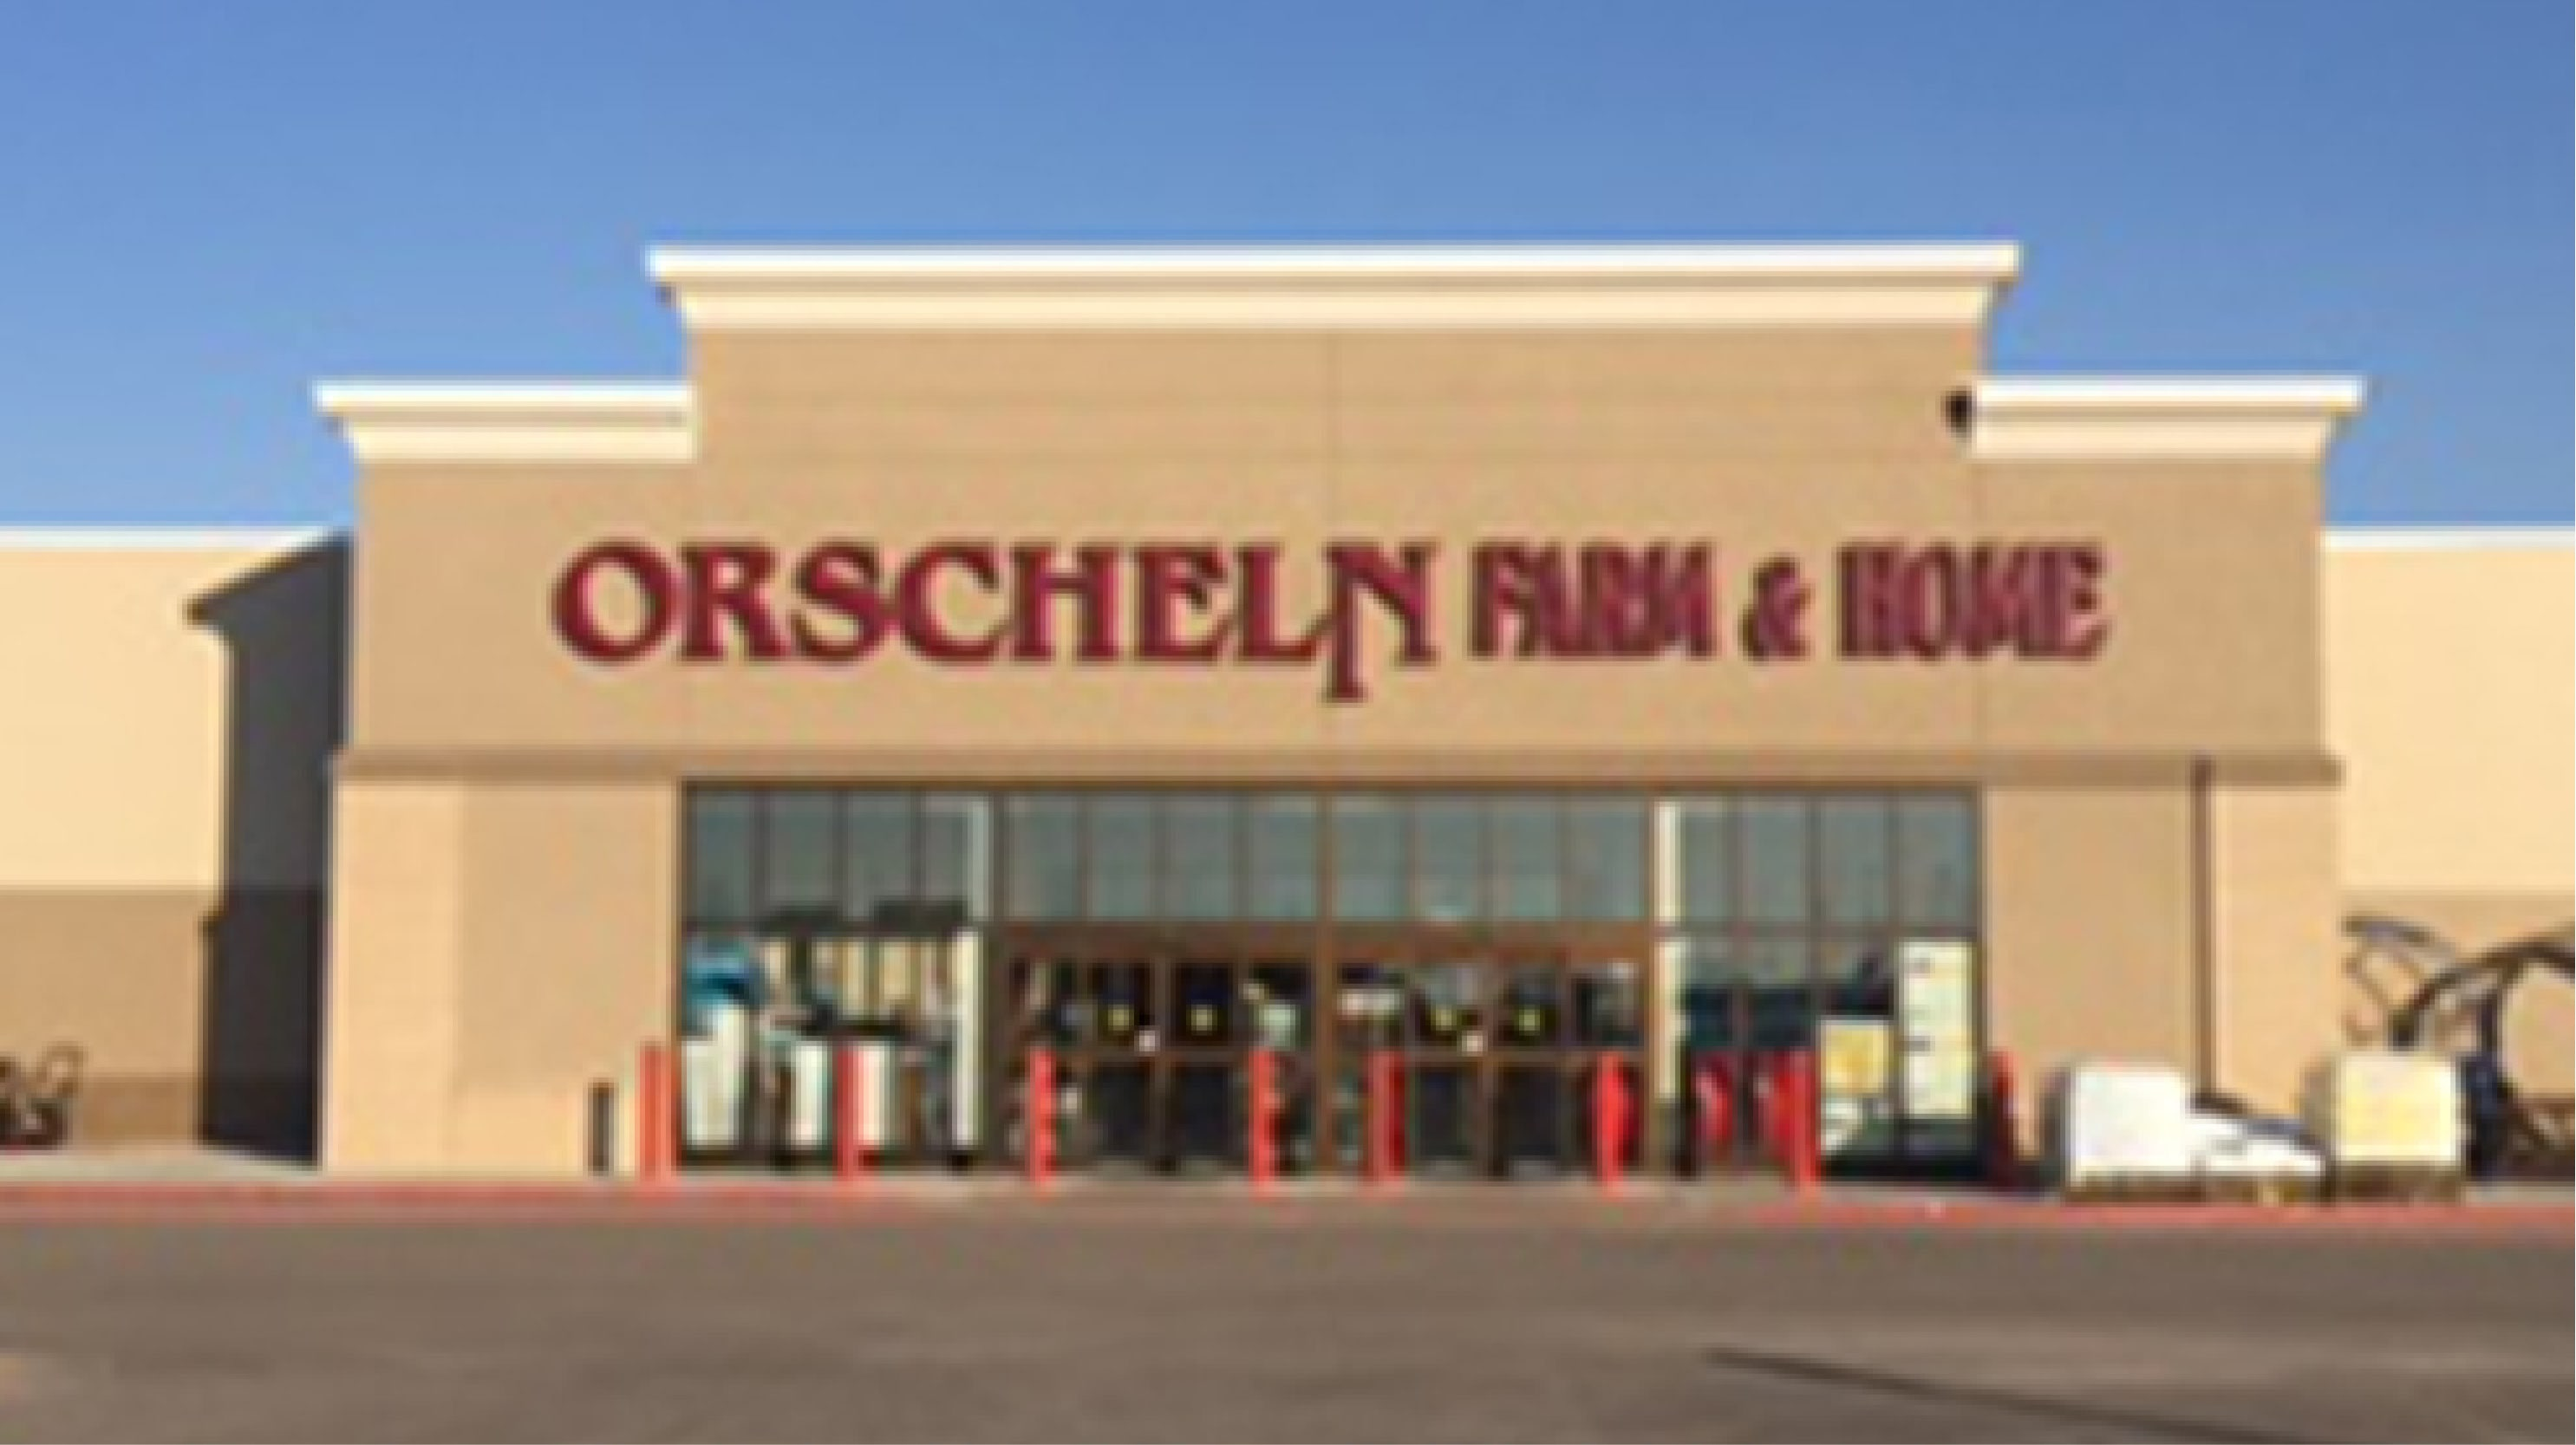 Front view of Orscheln Farm & Home Store in Hutchinson, Kansas 67501